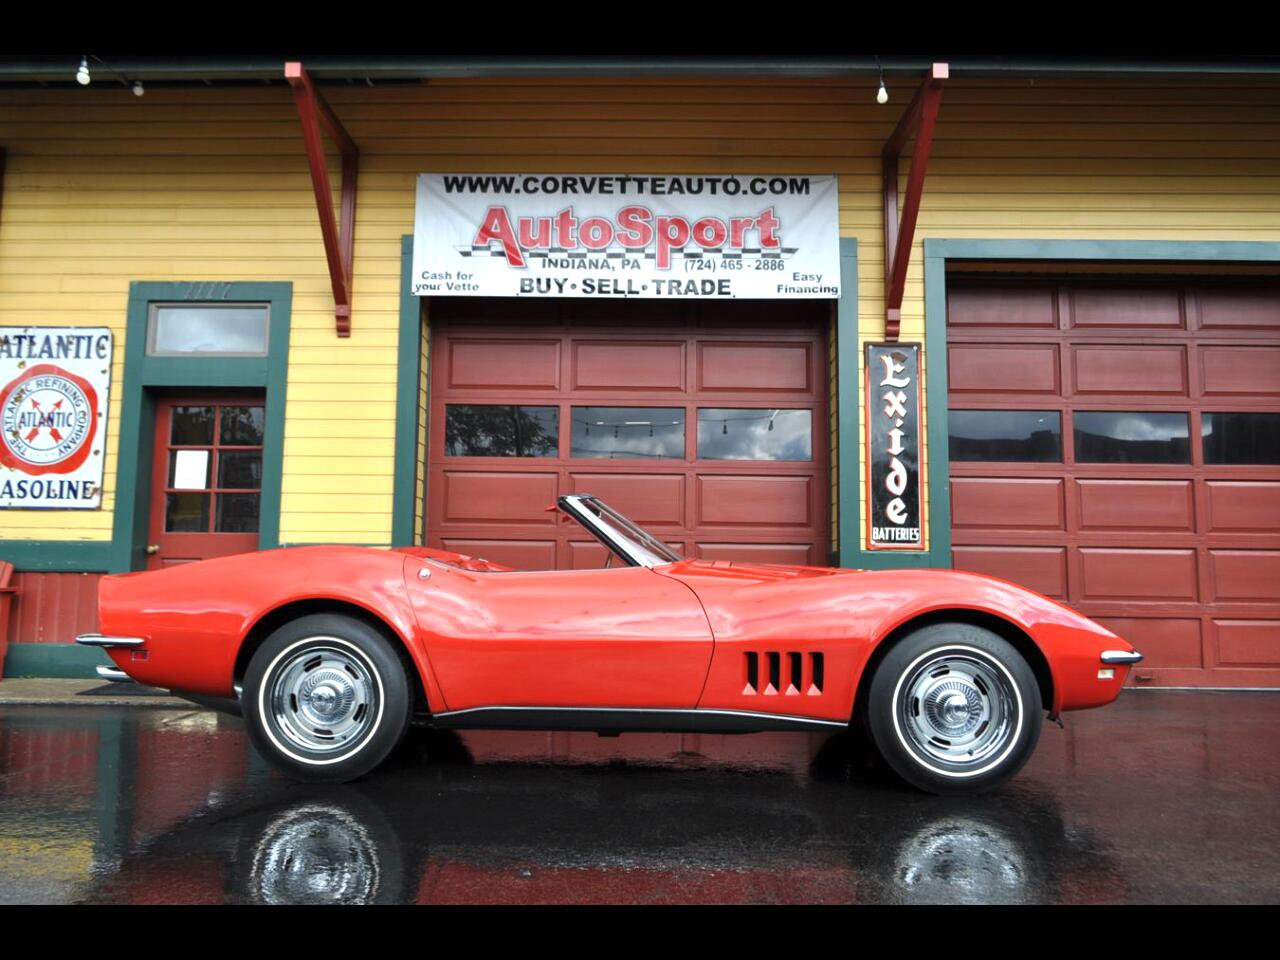 1968 Chevrolet Corvette 1968 #'s Matching 350hp Red/Red Org Docs Org Paint